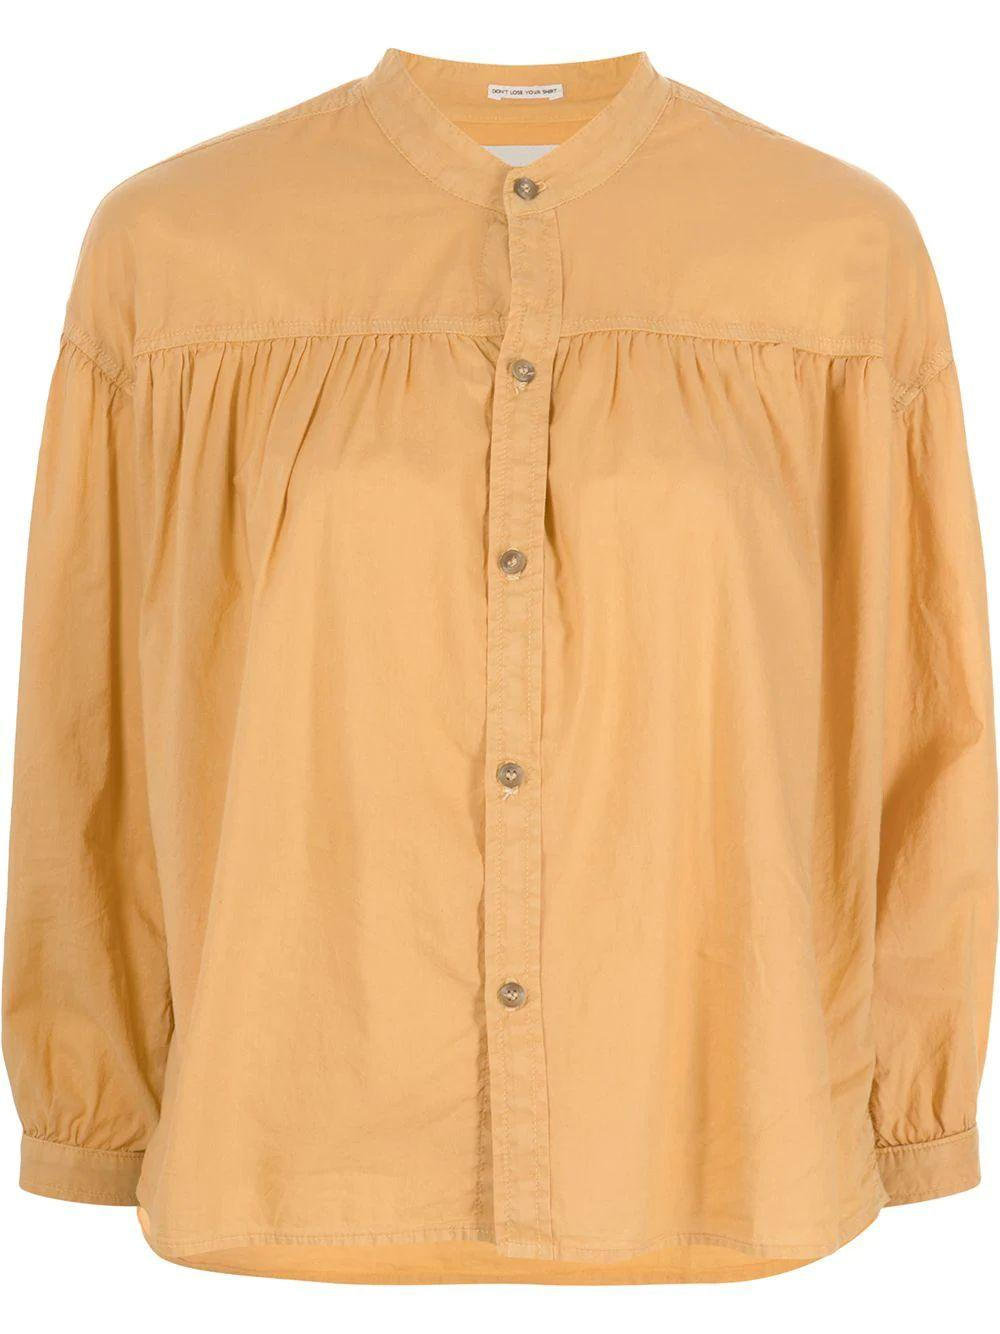 The Gatherer Blouse